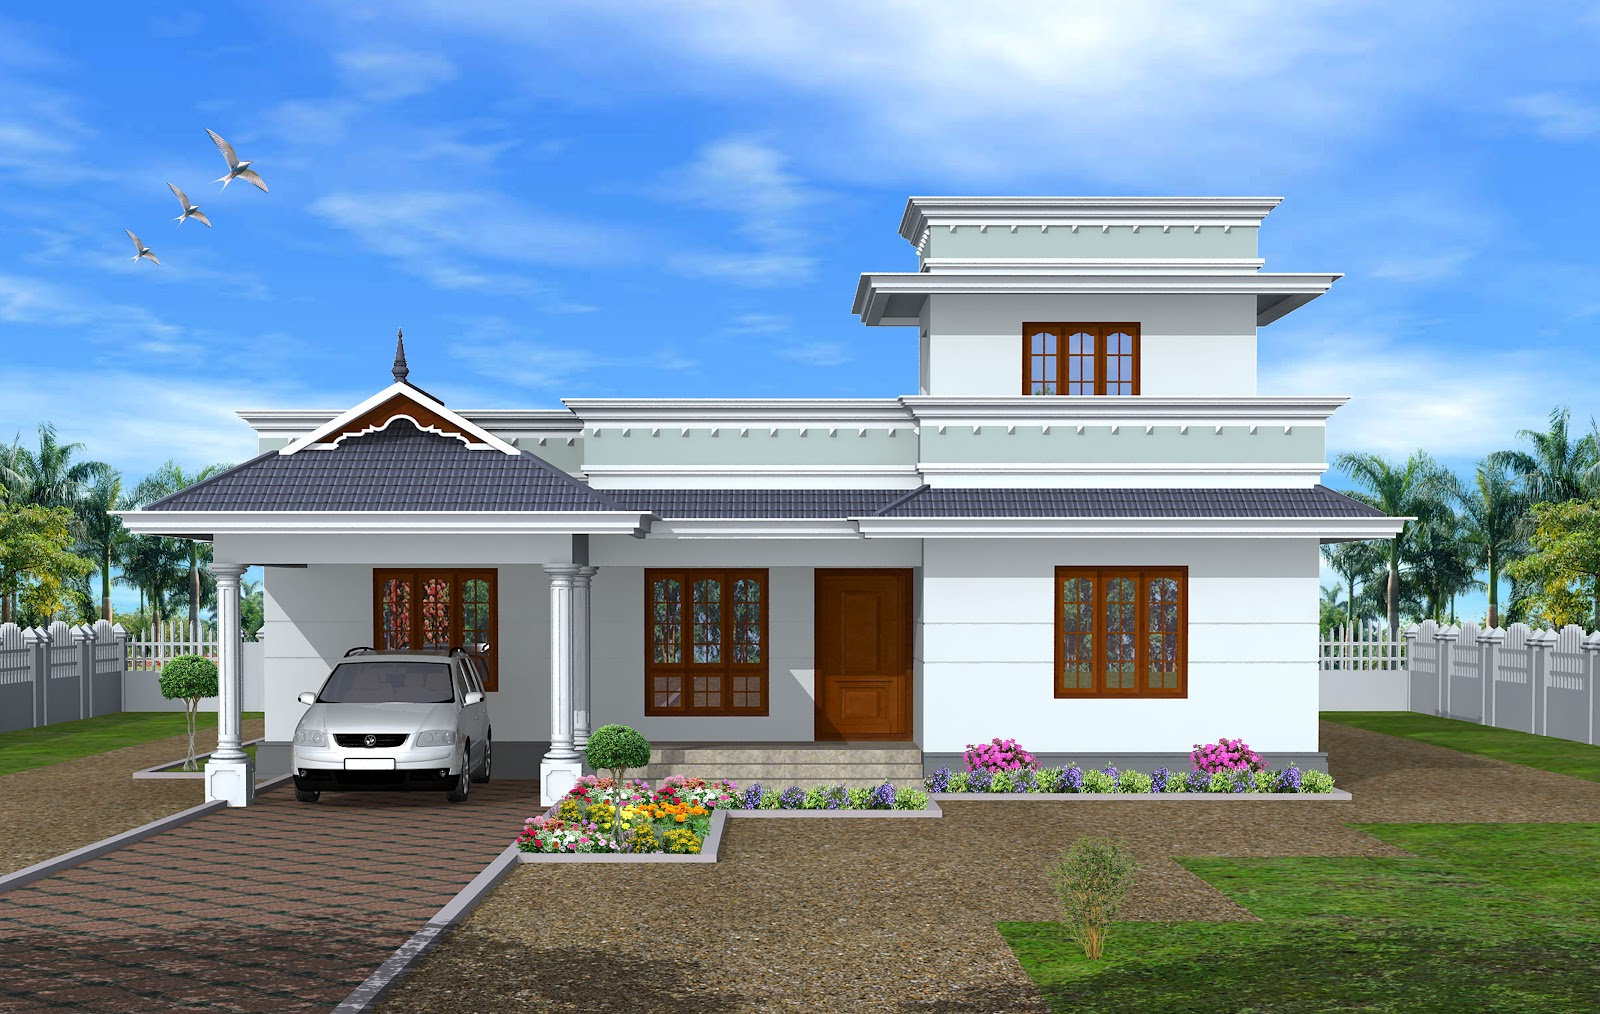 Green homes construction single floor kerala model house for Two floor house plans in kerala